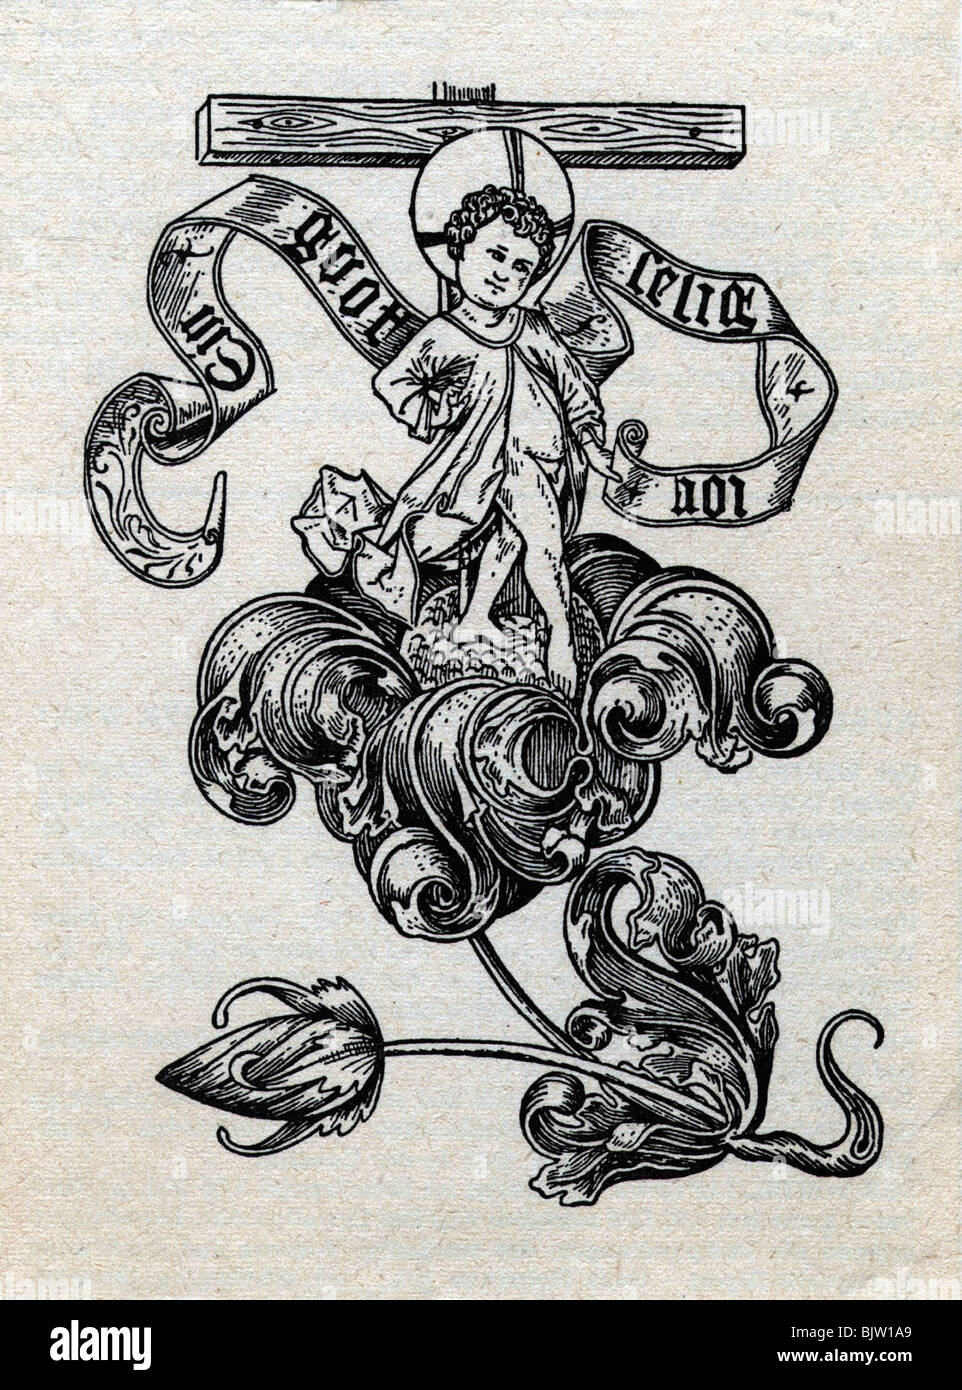 Festivity New Year Greetings From 1467 Woodcut 15th Century